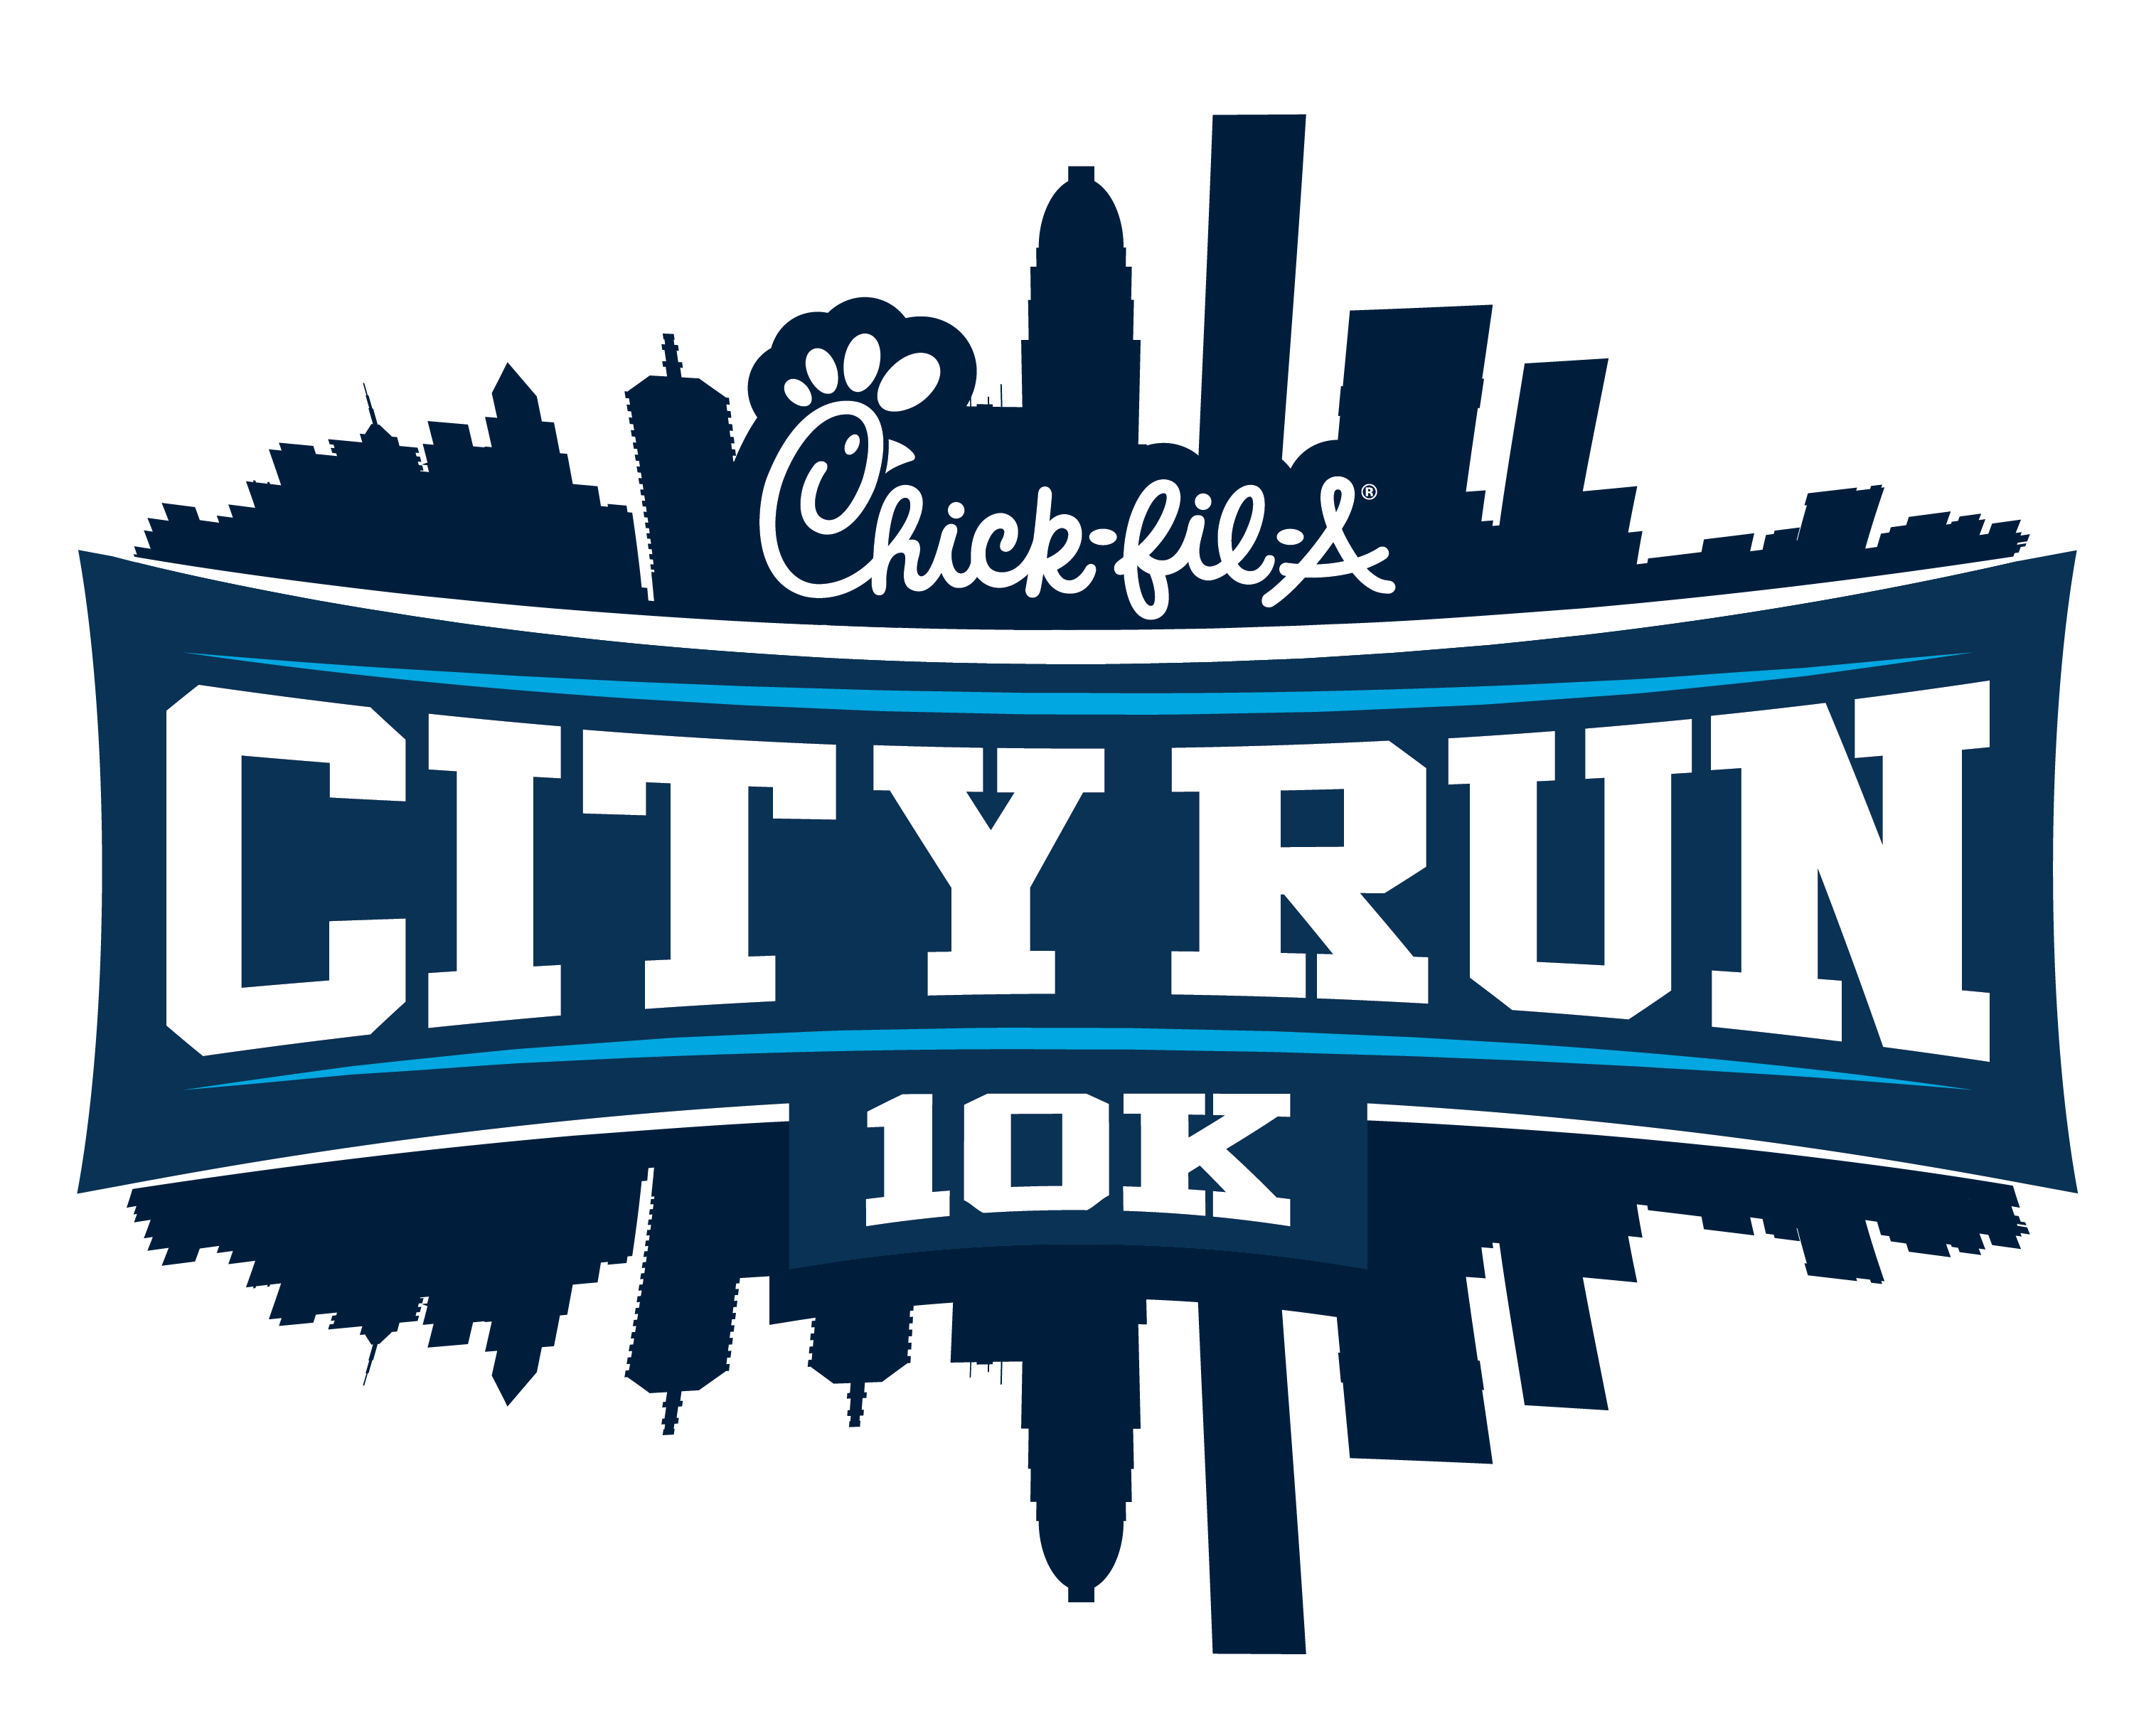 Register for the 2021 Chick-fil-A© City Run 10k